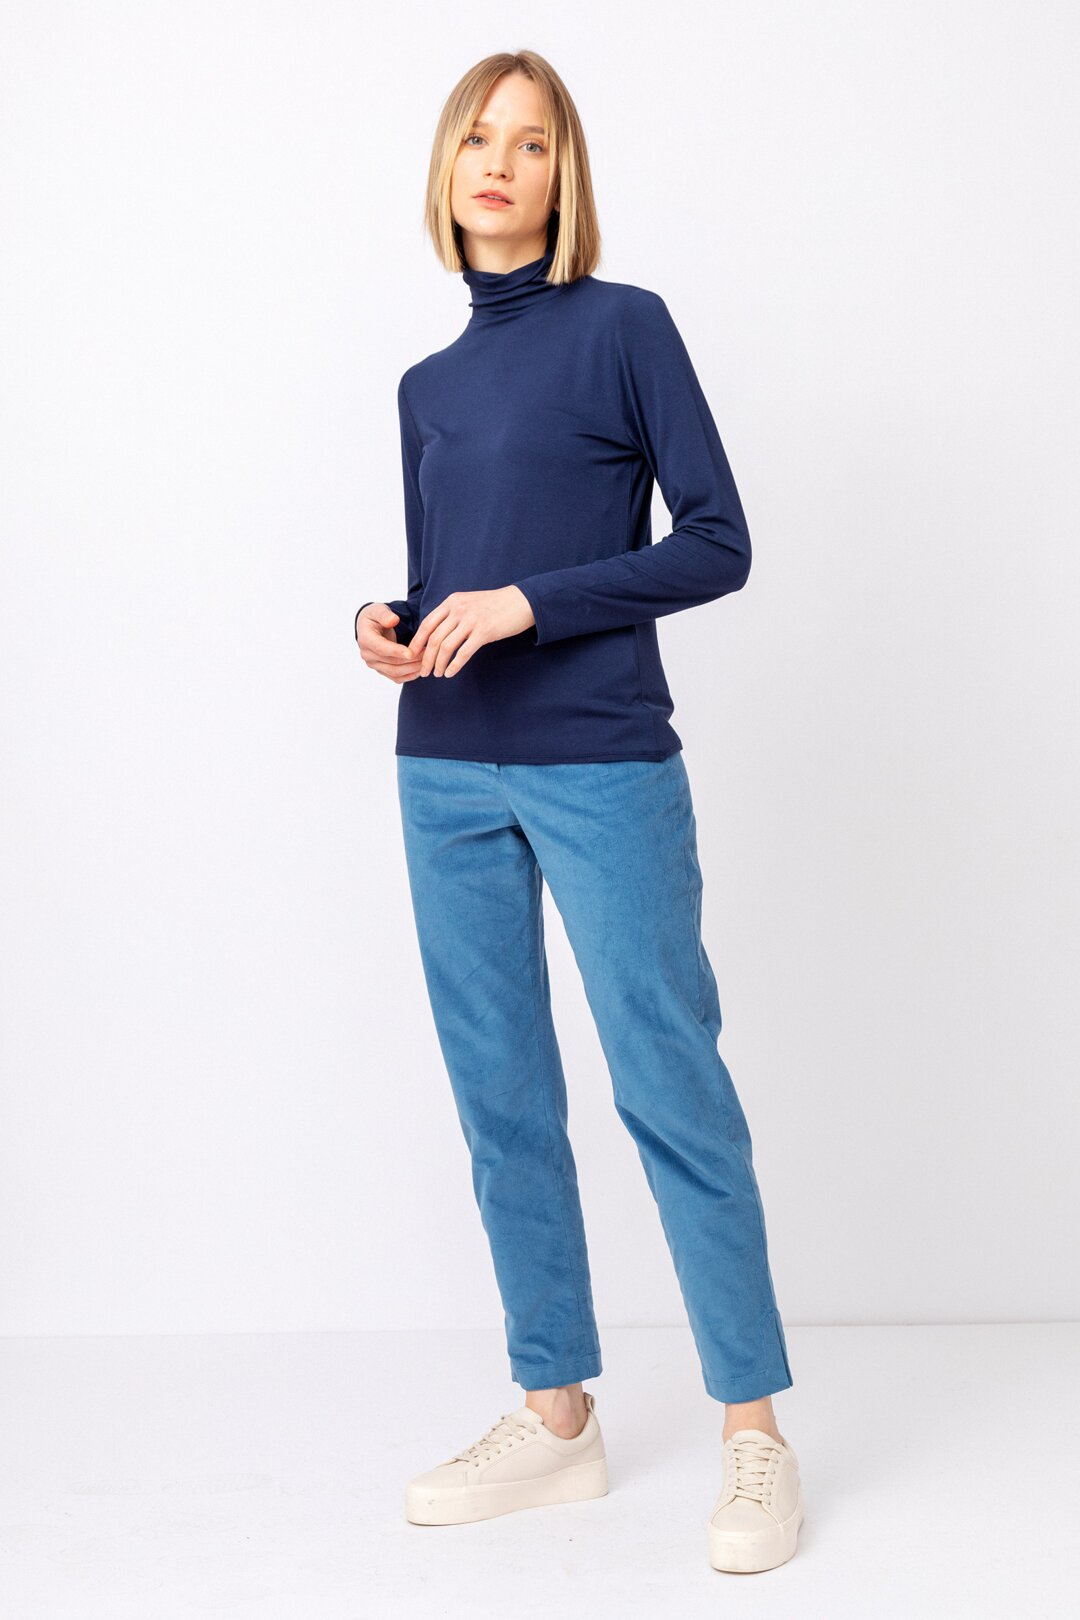 outfit-7c8a8445